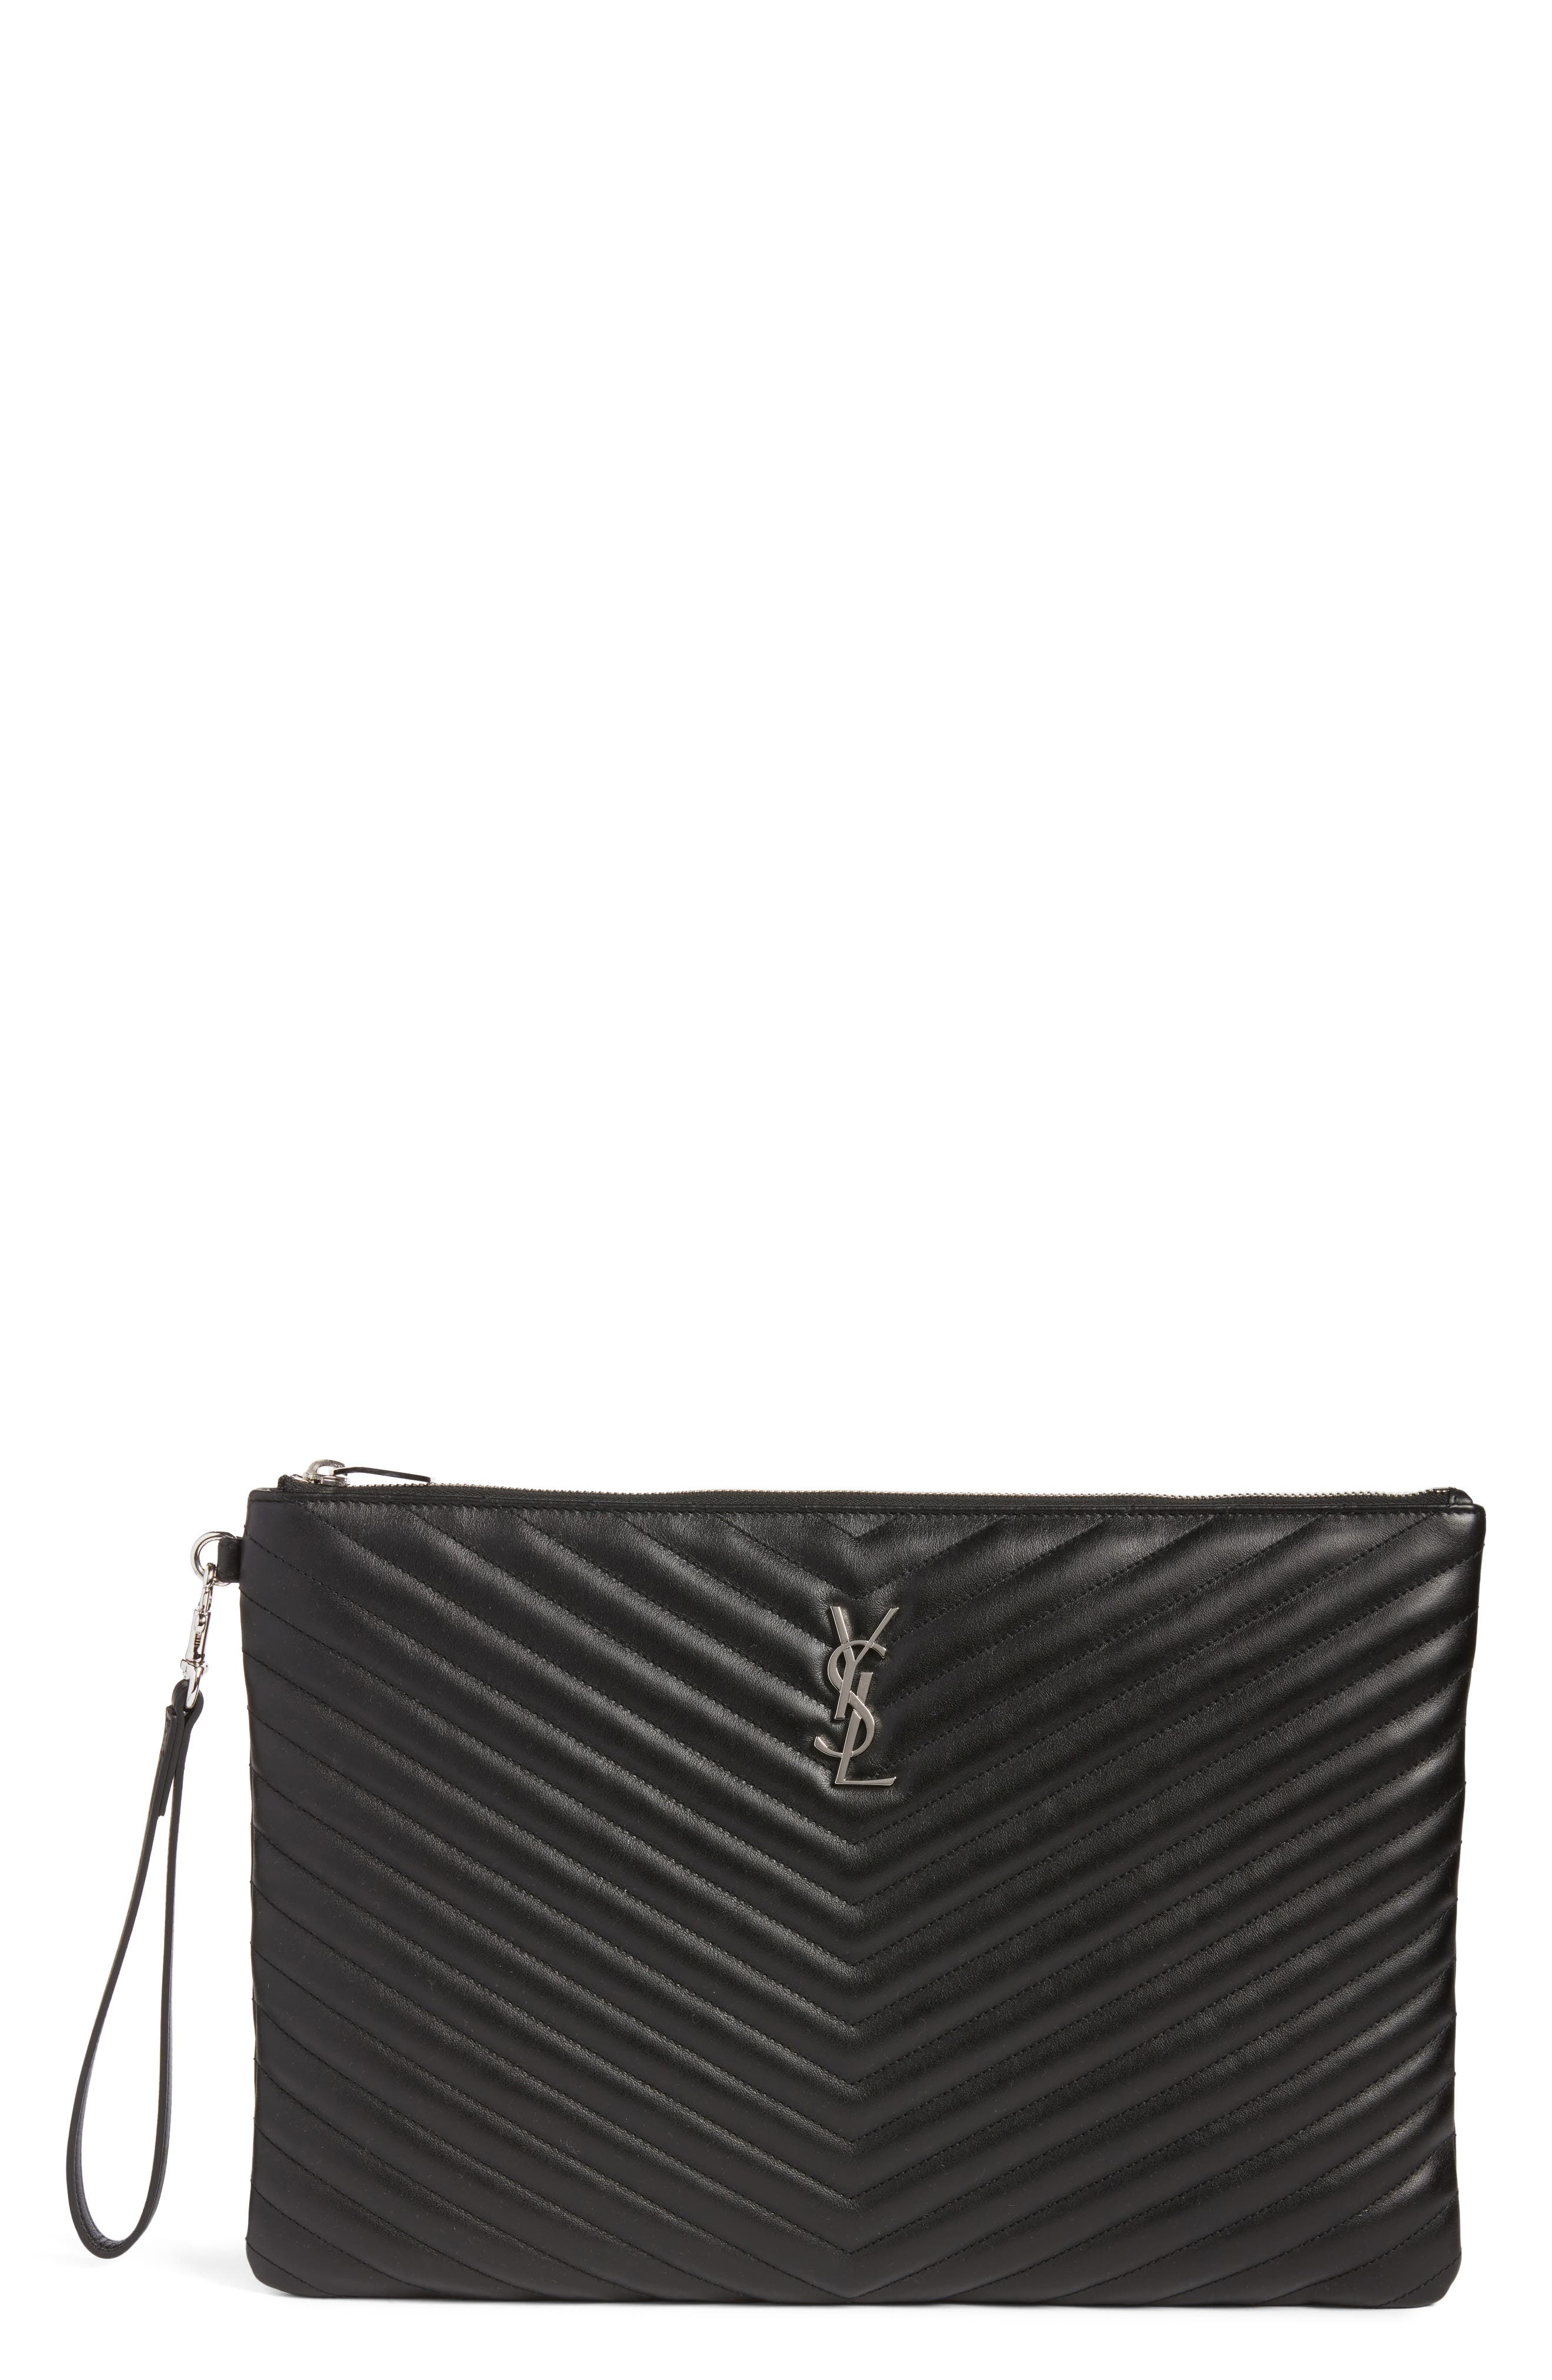 Saint Laurent Large Monogram Matelassé Leather Pouch